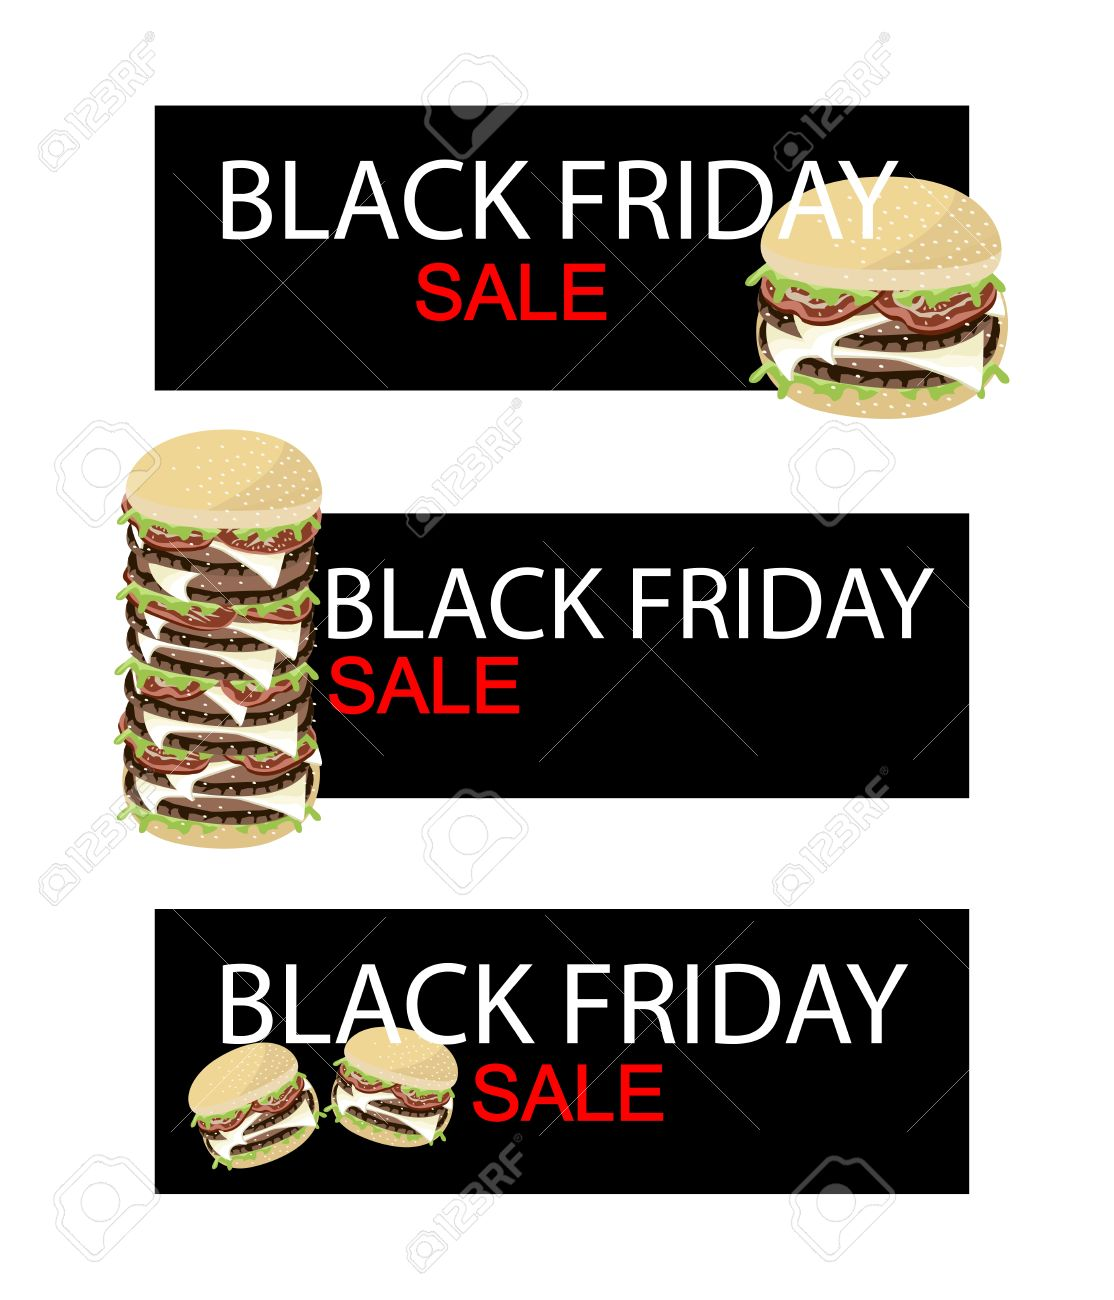 Illustration Of Delicious Burgery On Black Friday Shopping Banner.